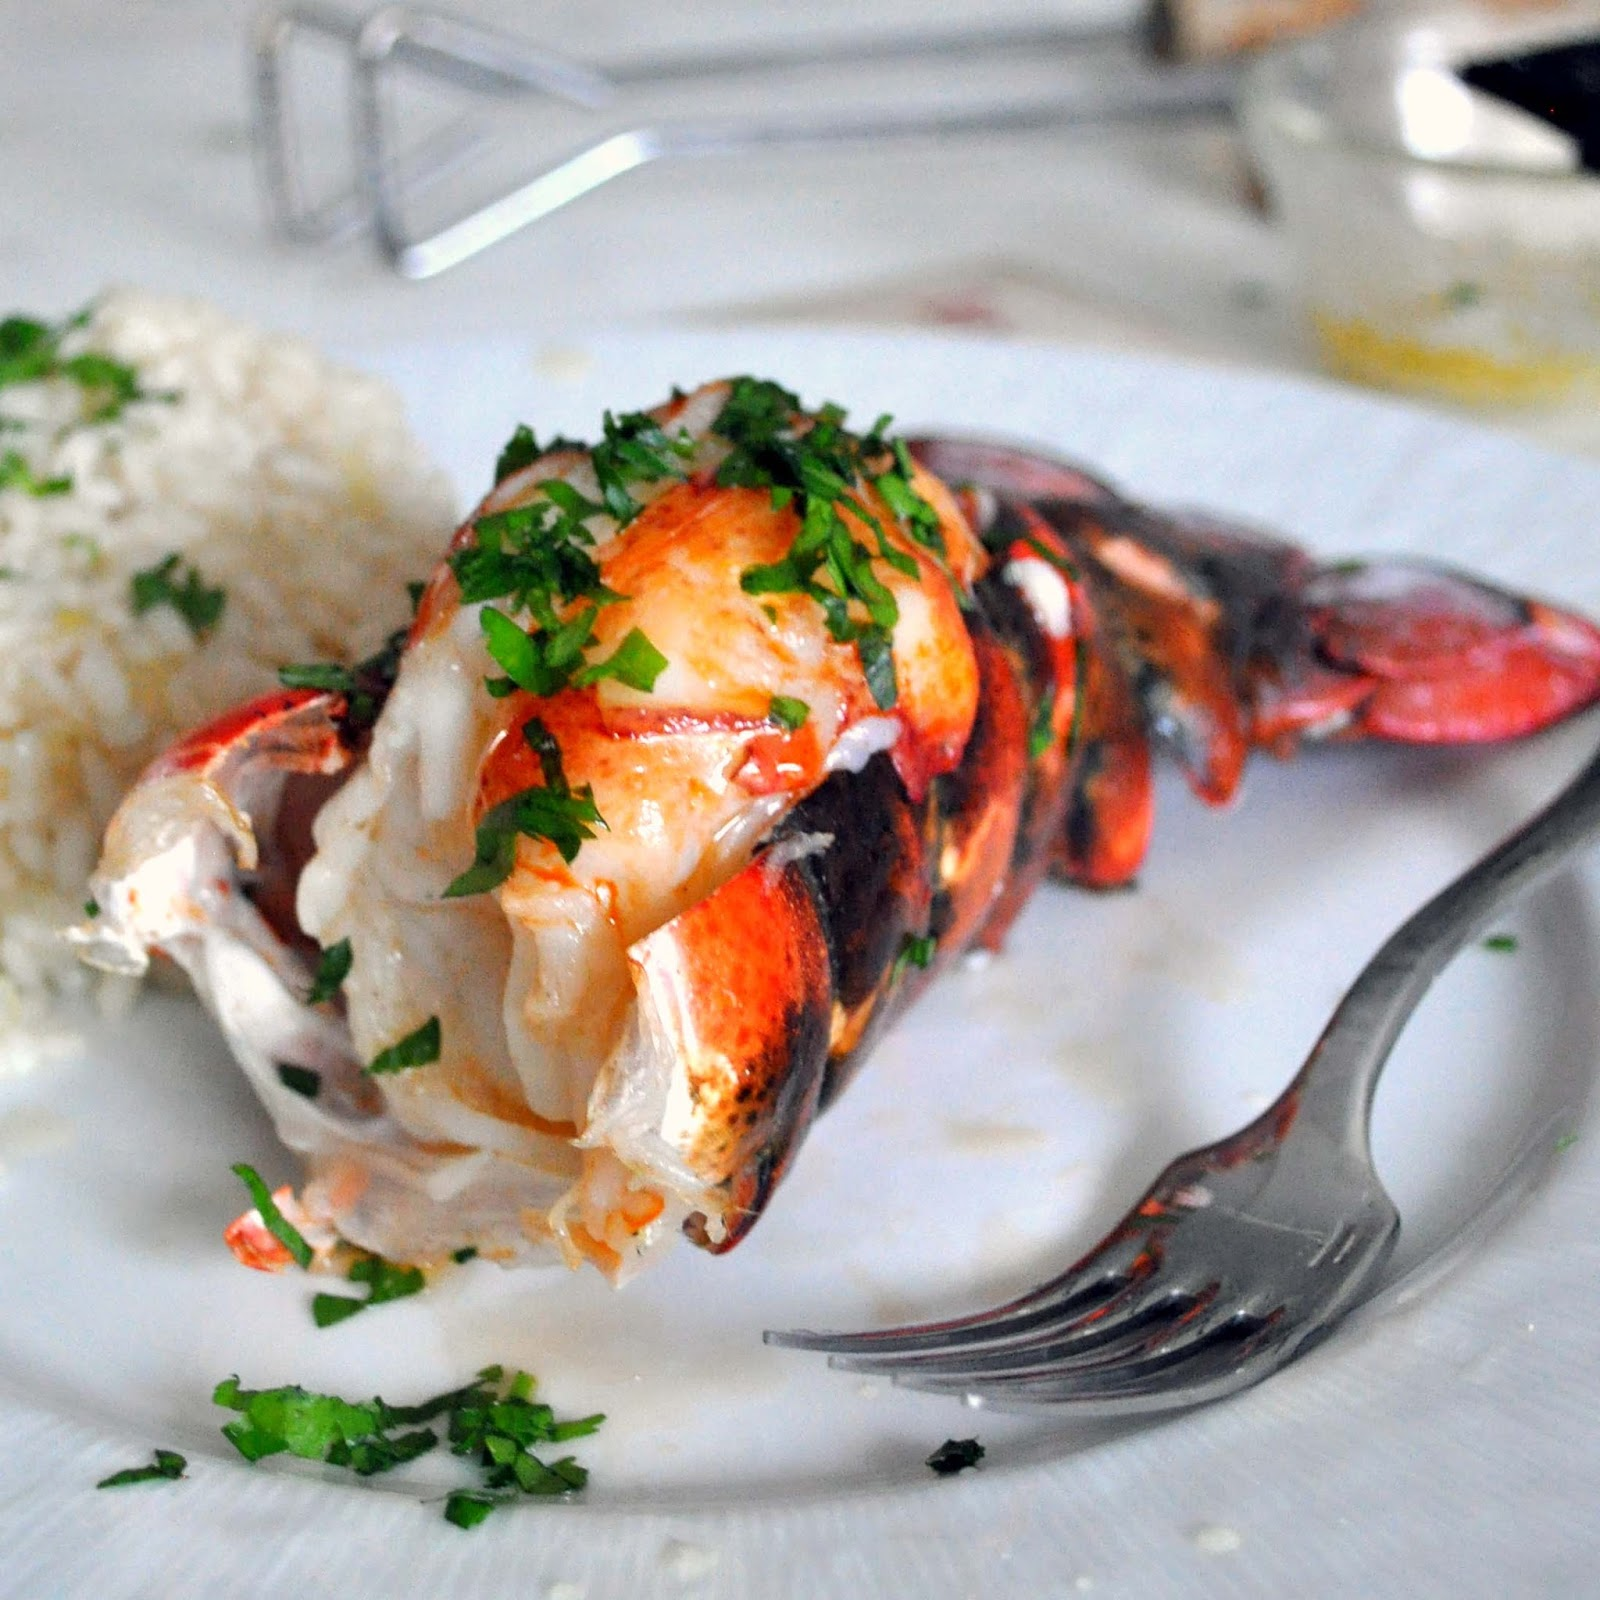 Cooking with Manuela: Grilled Lobster Tail with White Wine Risotto